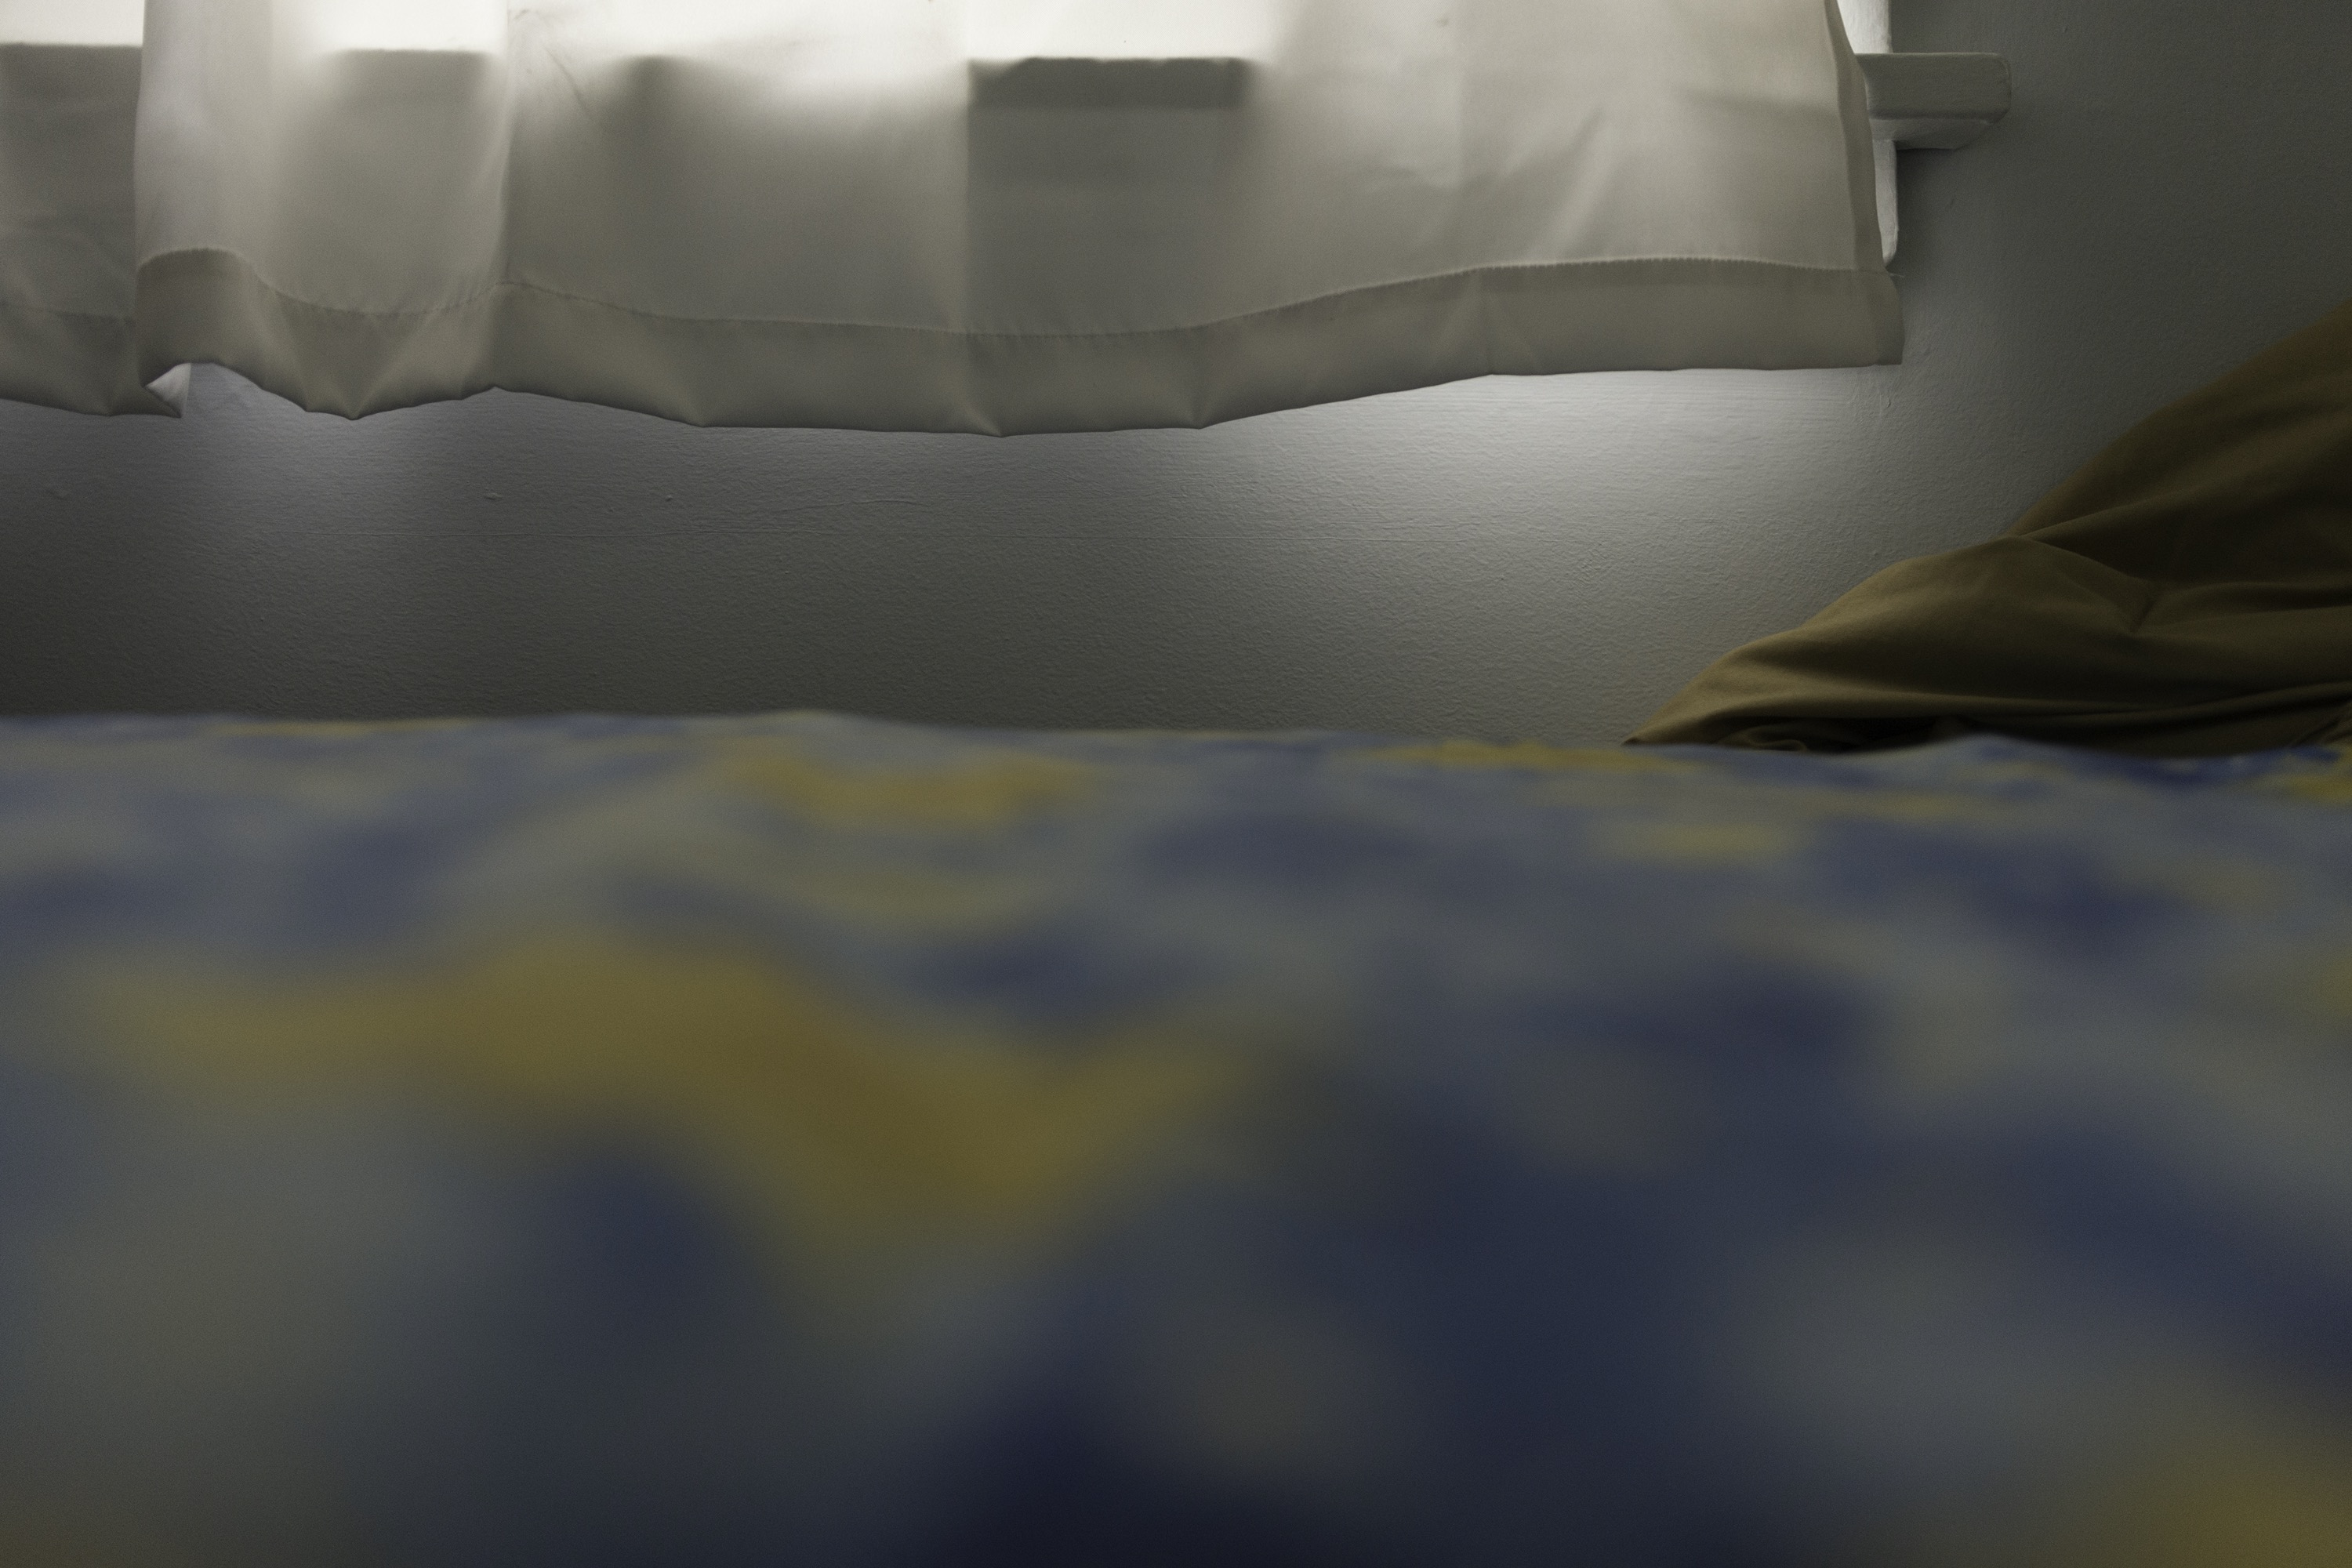 An out-of-focus yellow-and-blue bedsheet leads up to a window, which casts blobs of soft light downward.